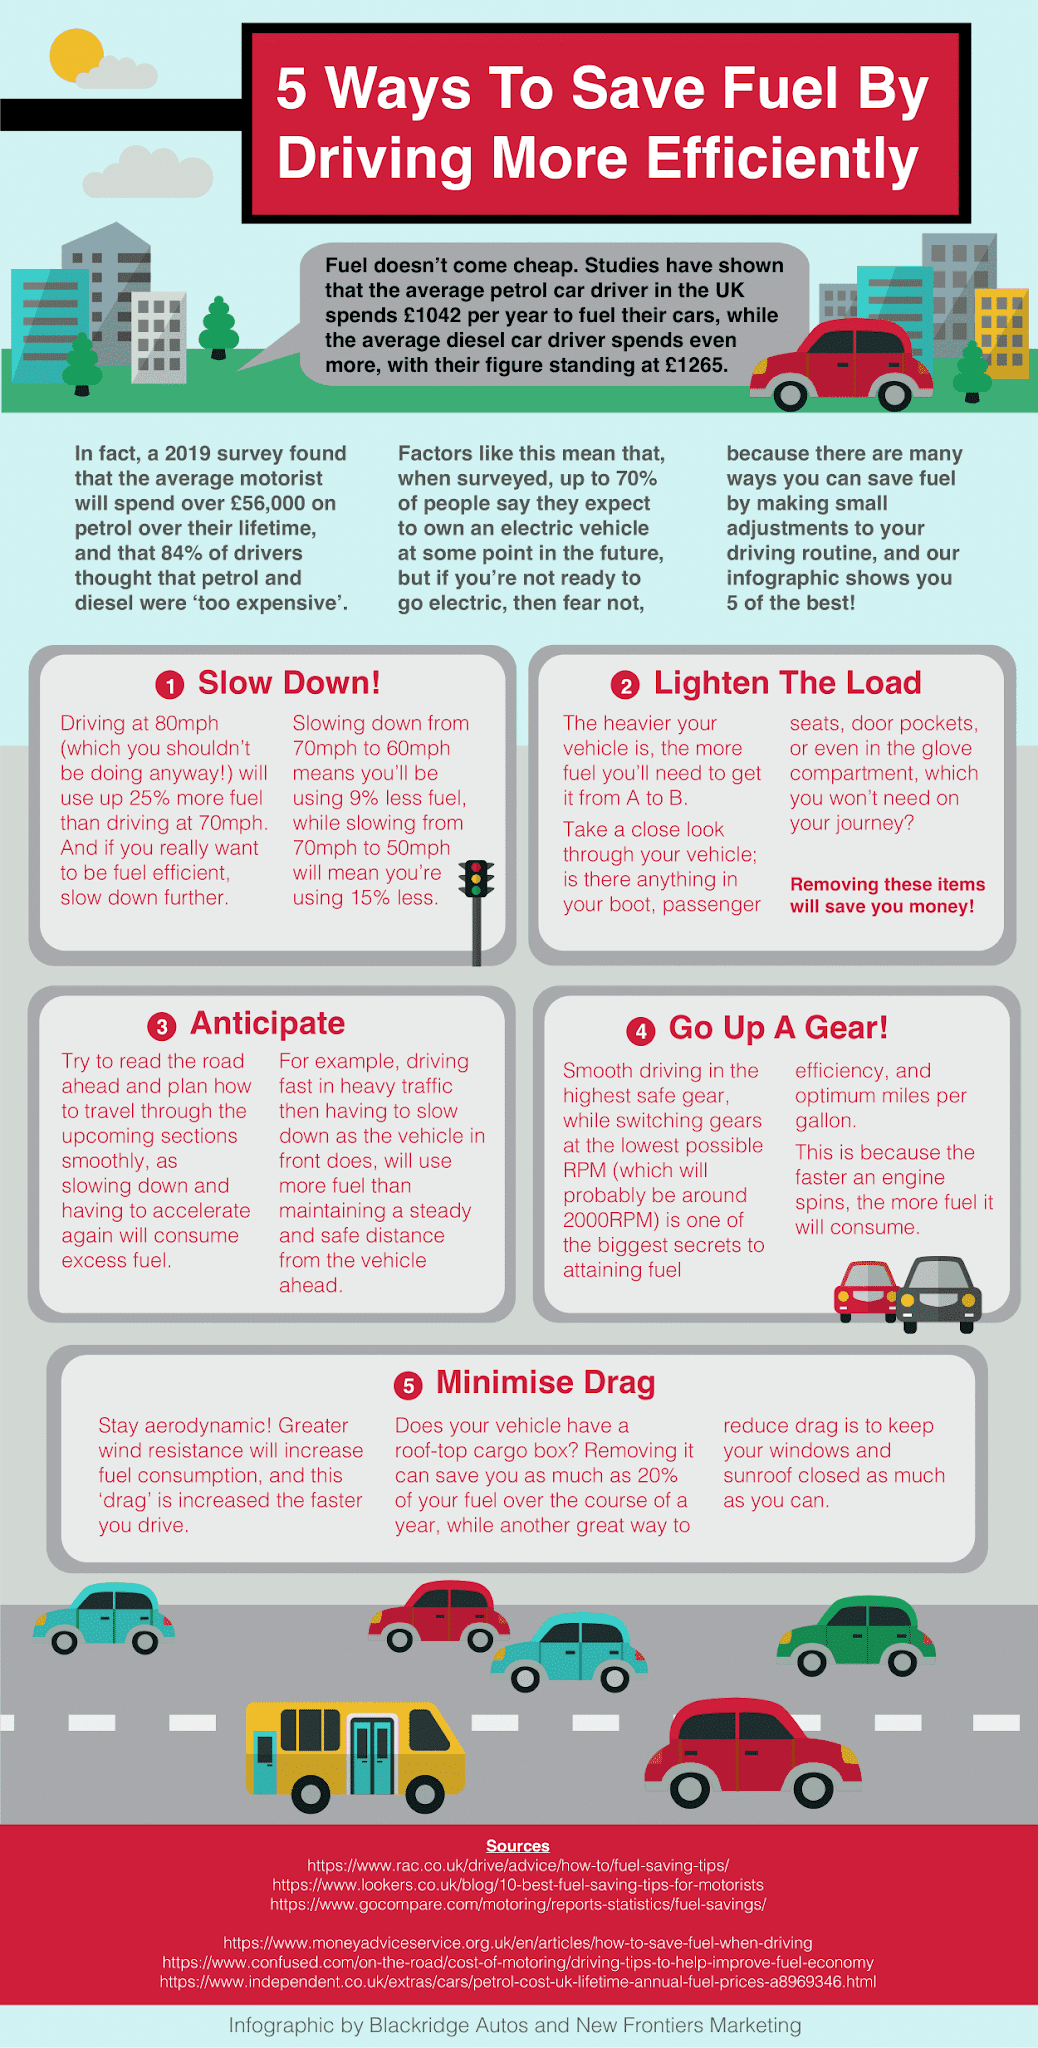 5 Ways To Save Fuel By Driving More Efficiently #infographic #Transportation #Save Fuel #Driving